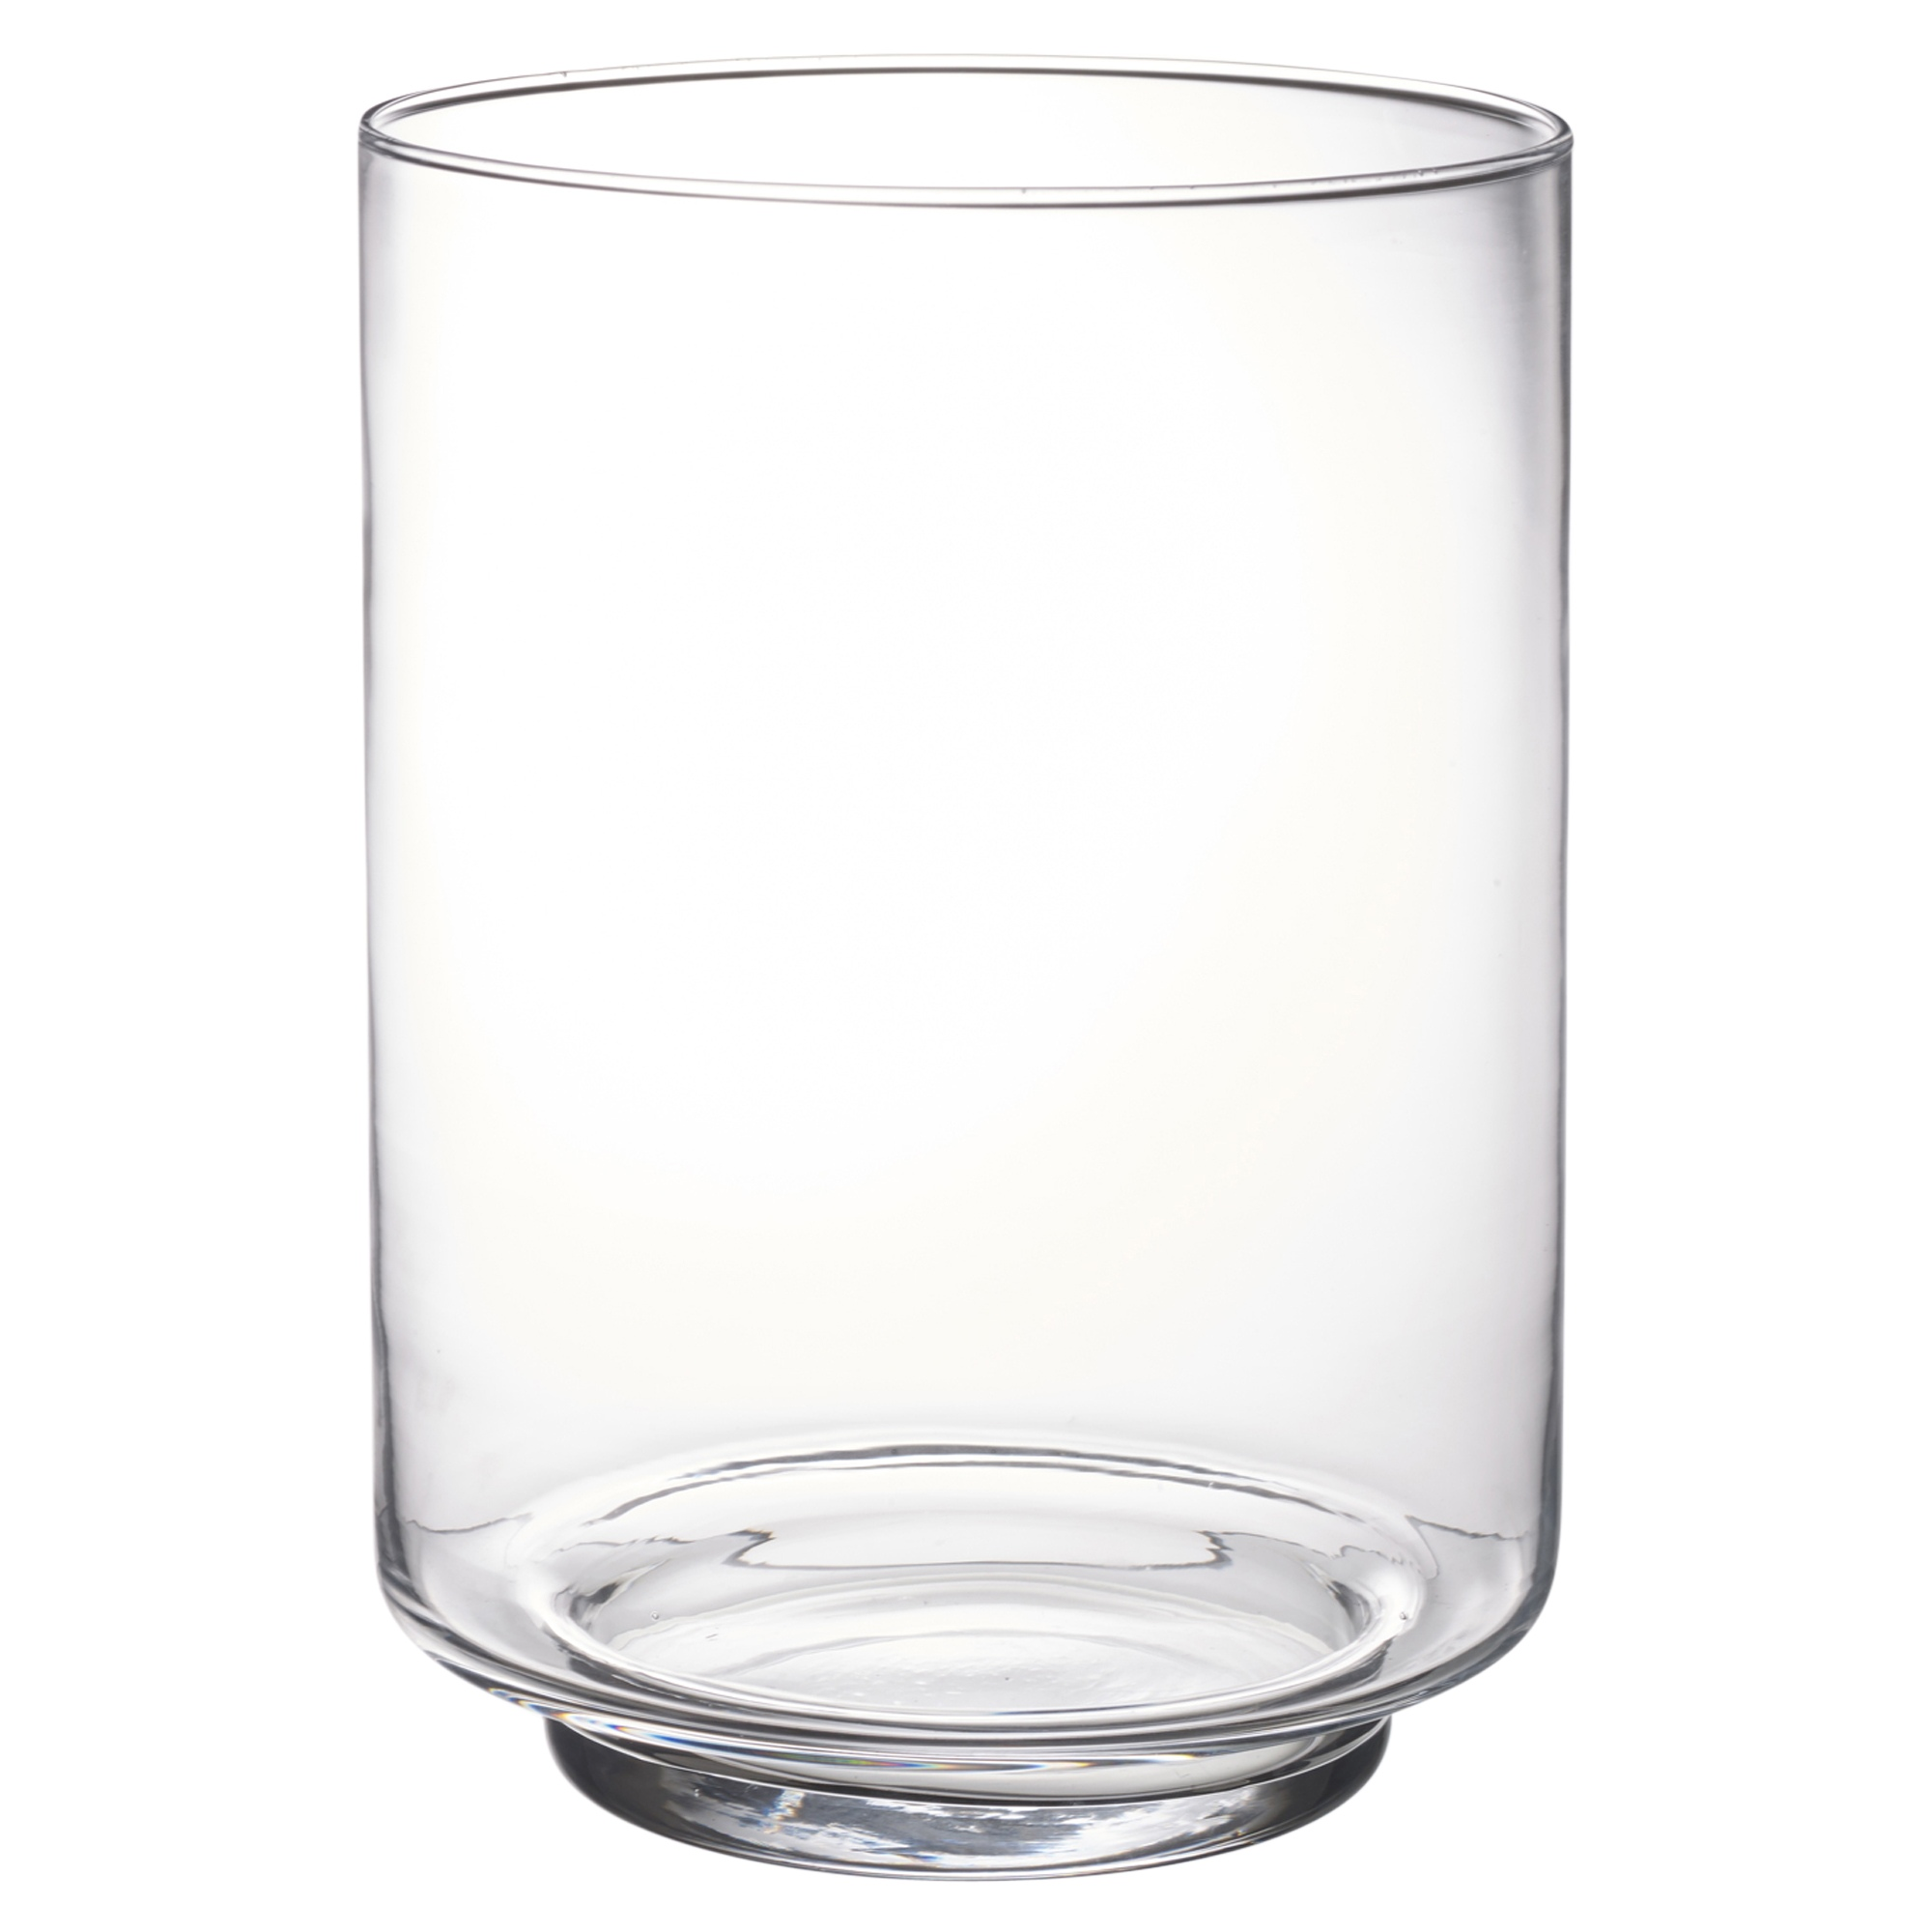 Clear Cylinder Glass Vase. WGV Clear Square Twist Block Glass Vase, Inch. by WGV International. $ $ 12 75 $ Prime. FREE Shipping on eligible orders. out of 5 stars